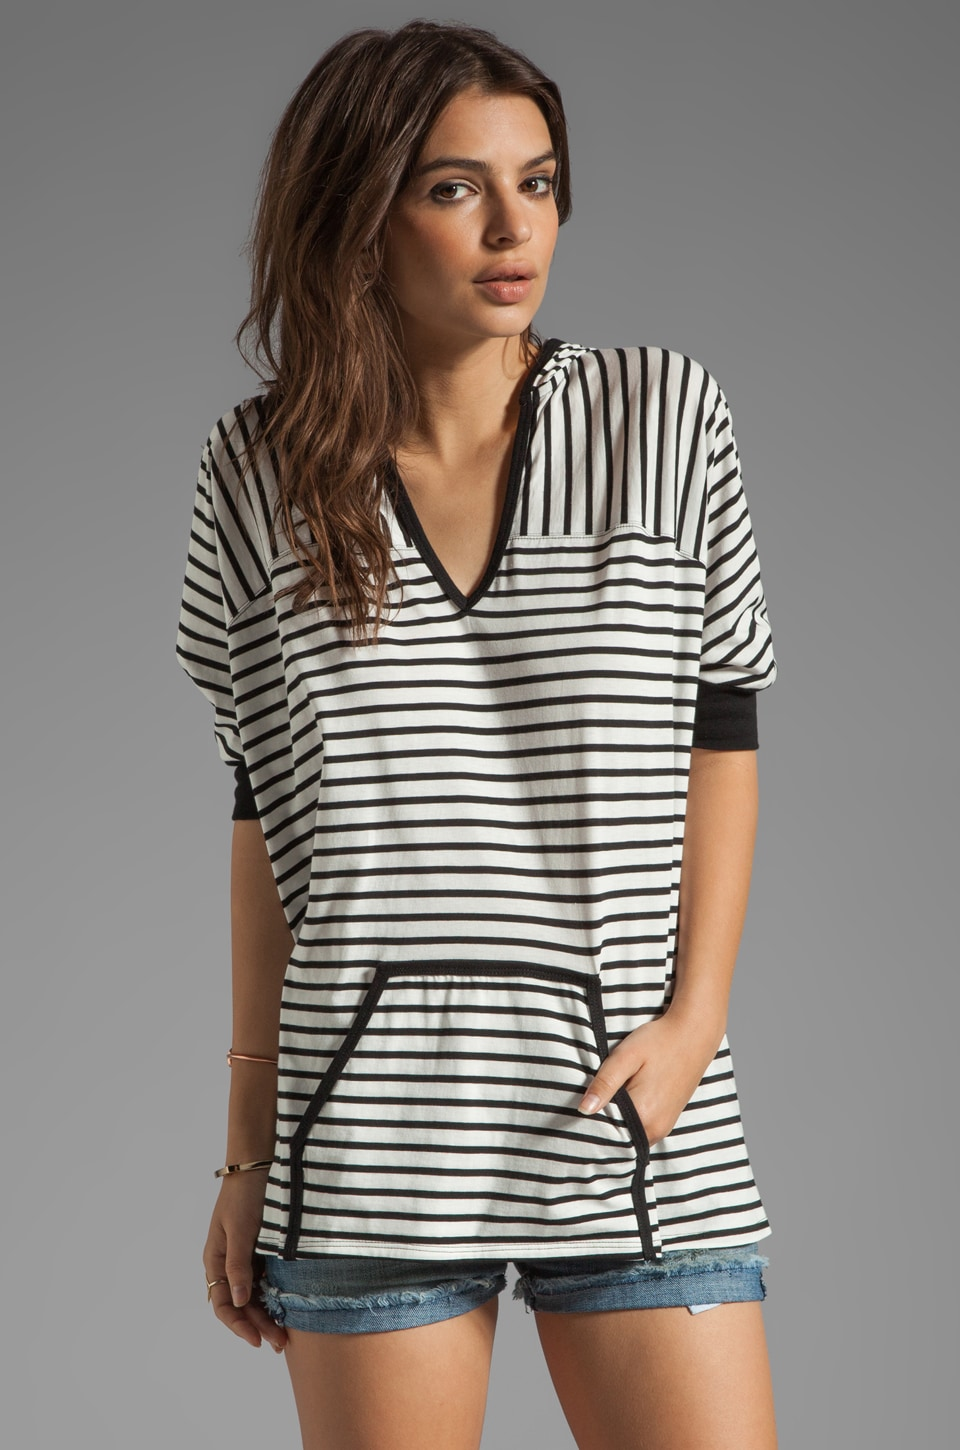 Trina Turk Surfin' Stripe Hooded Poncho